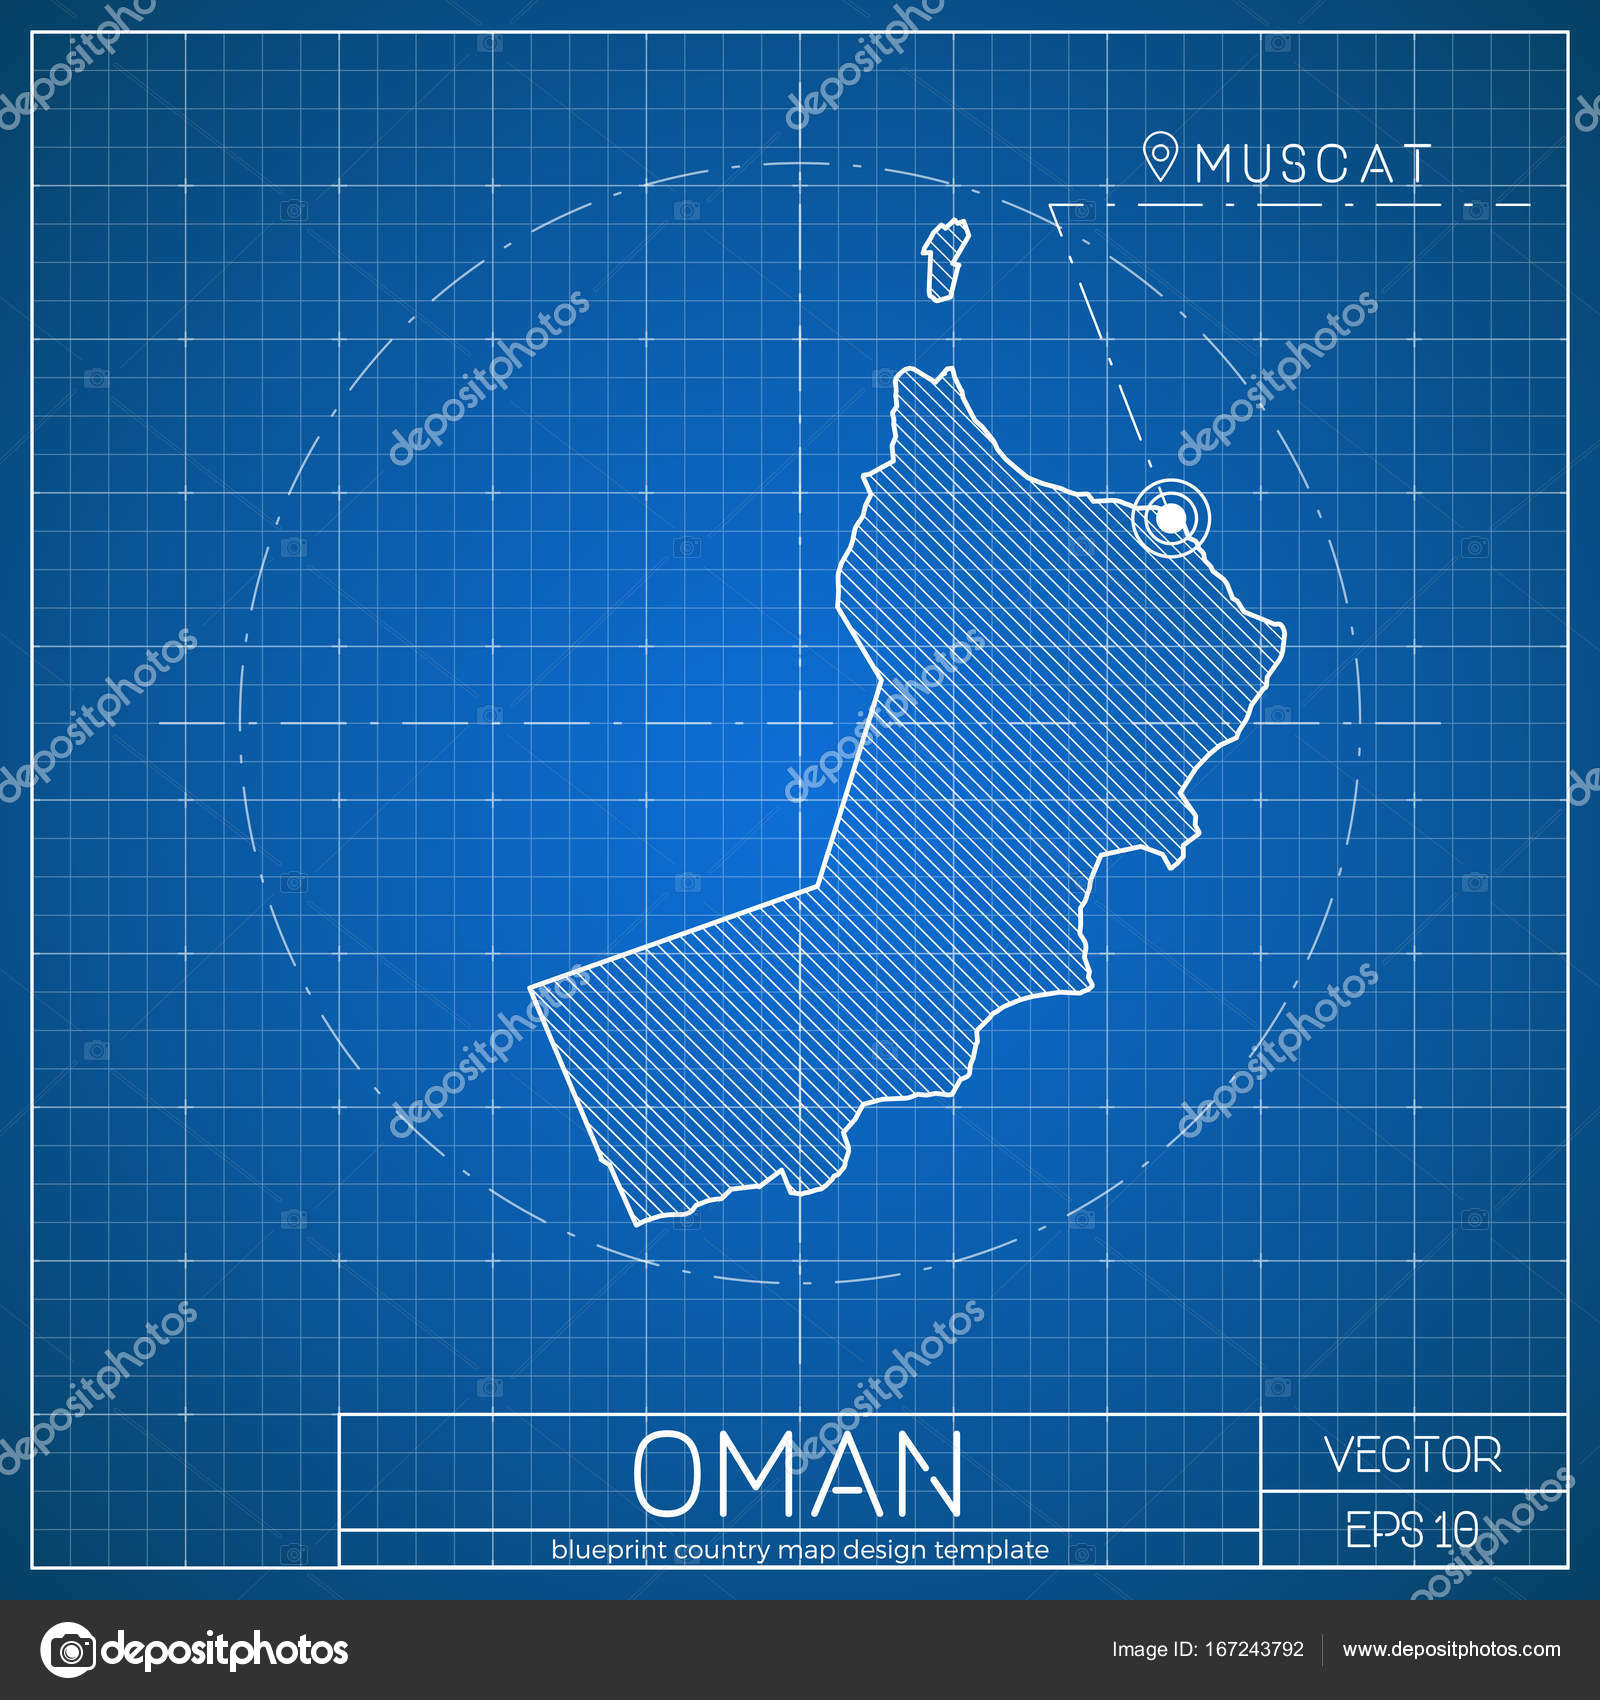 Oman Blueprint Map Template With Capital City Muscat Marked On - Oman map download